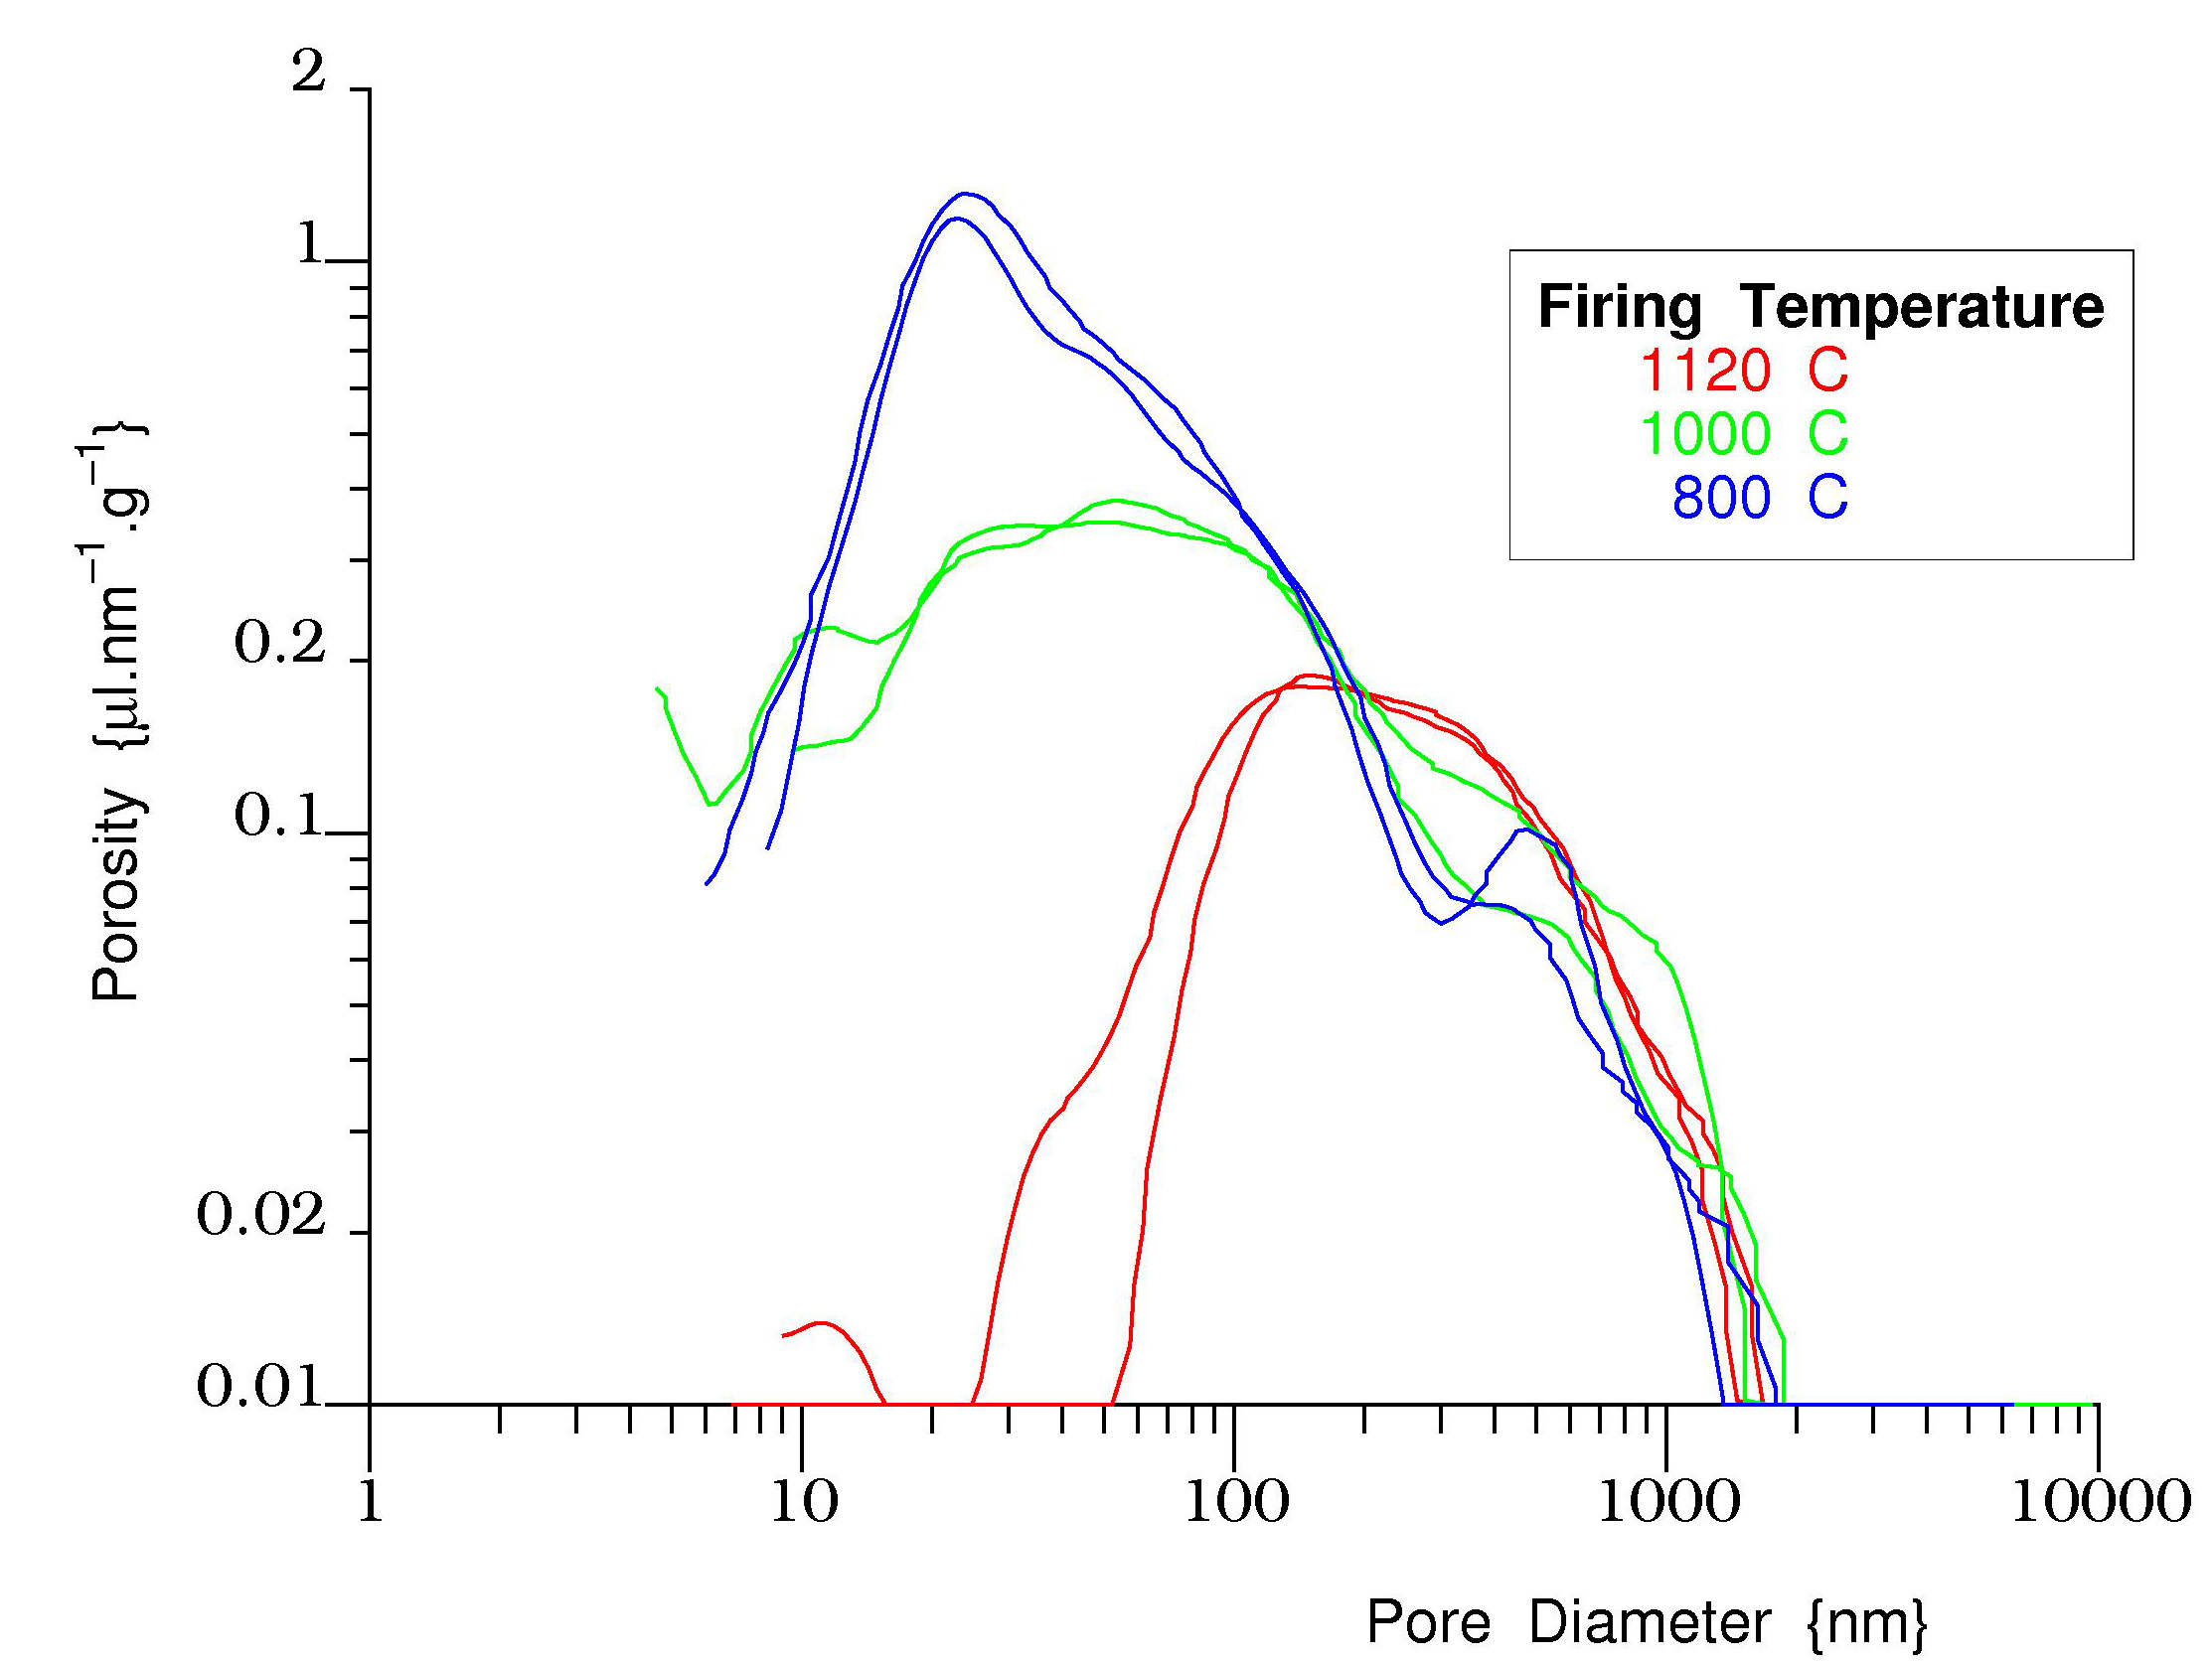 Pore size sistributions for a clay fired at